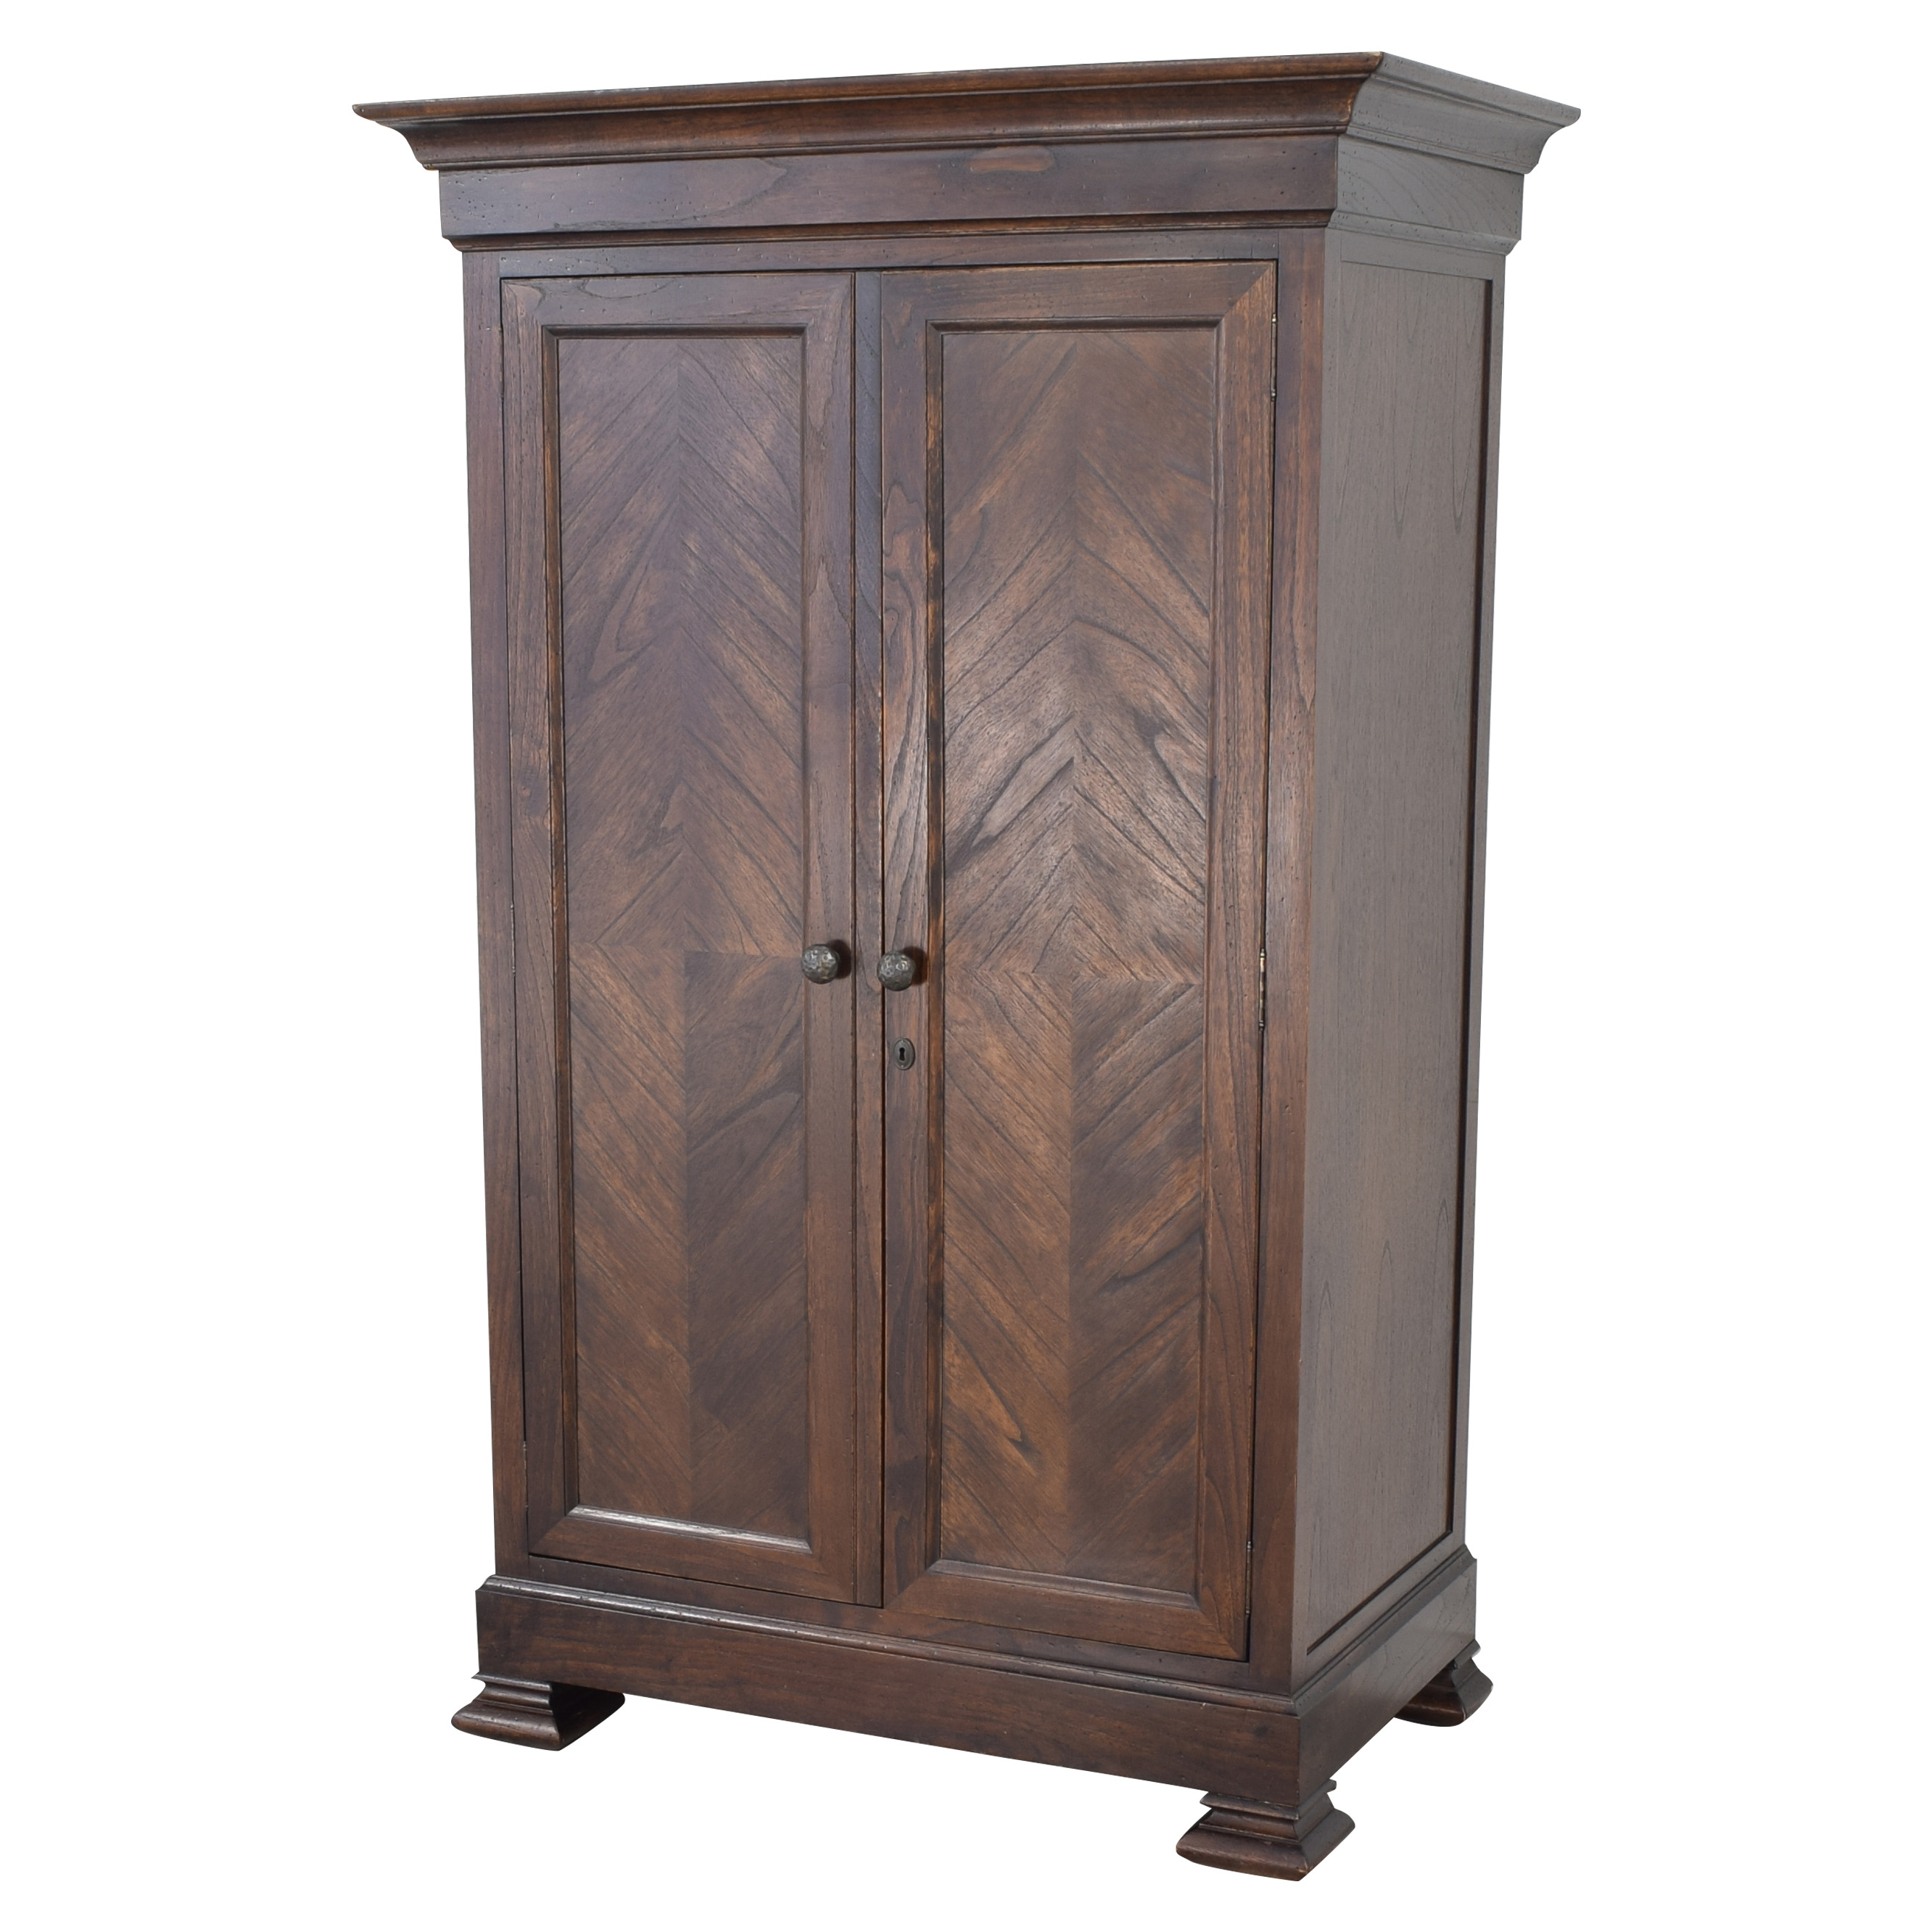 Arhaus Arhaus Armoire for sale